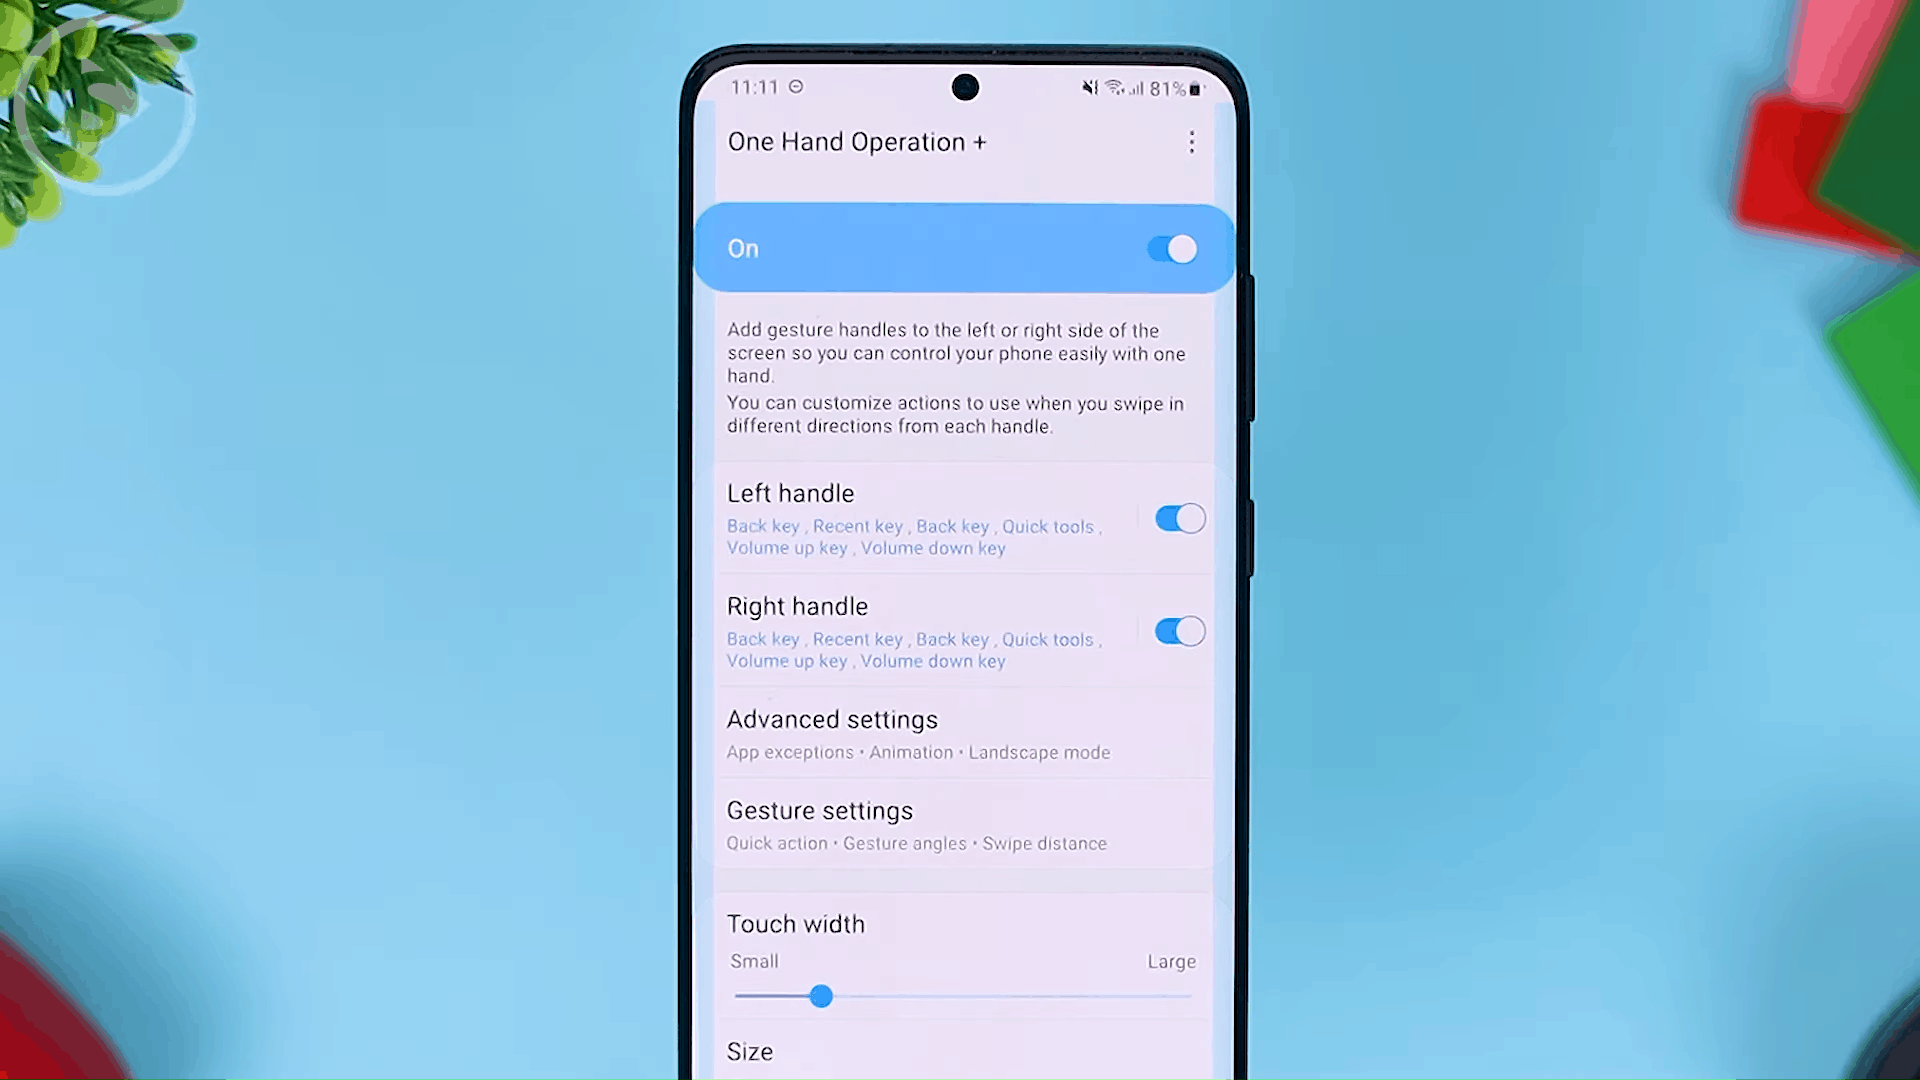 Overview - The Latest One Hand Operation+ Feature in Update 2021 - A MANDATORY Application For Full Screen Gesture Users